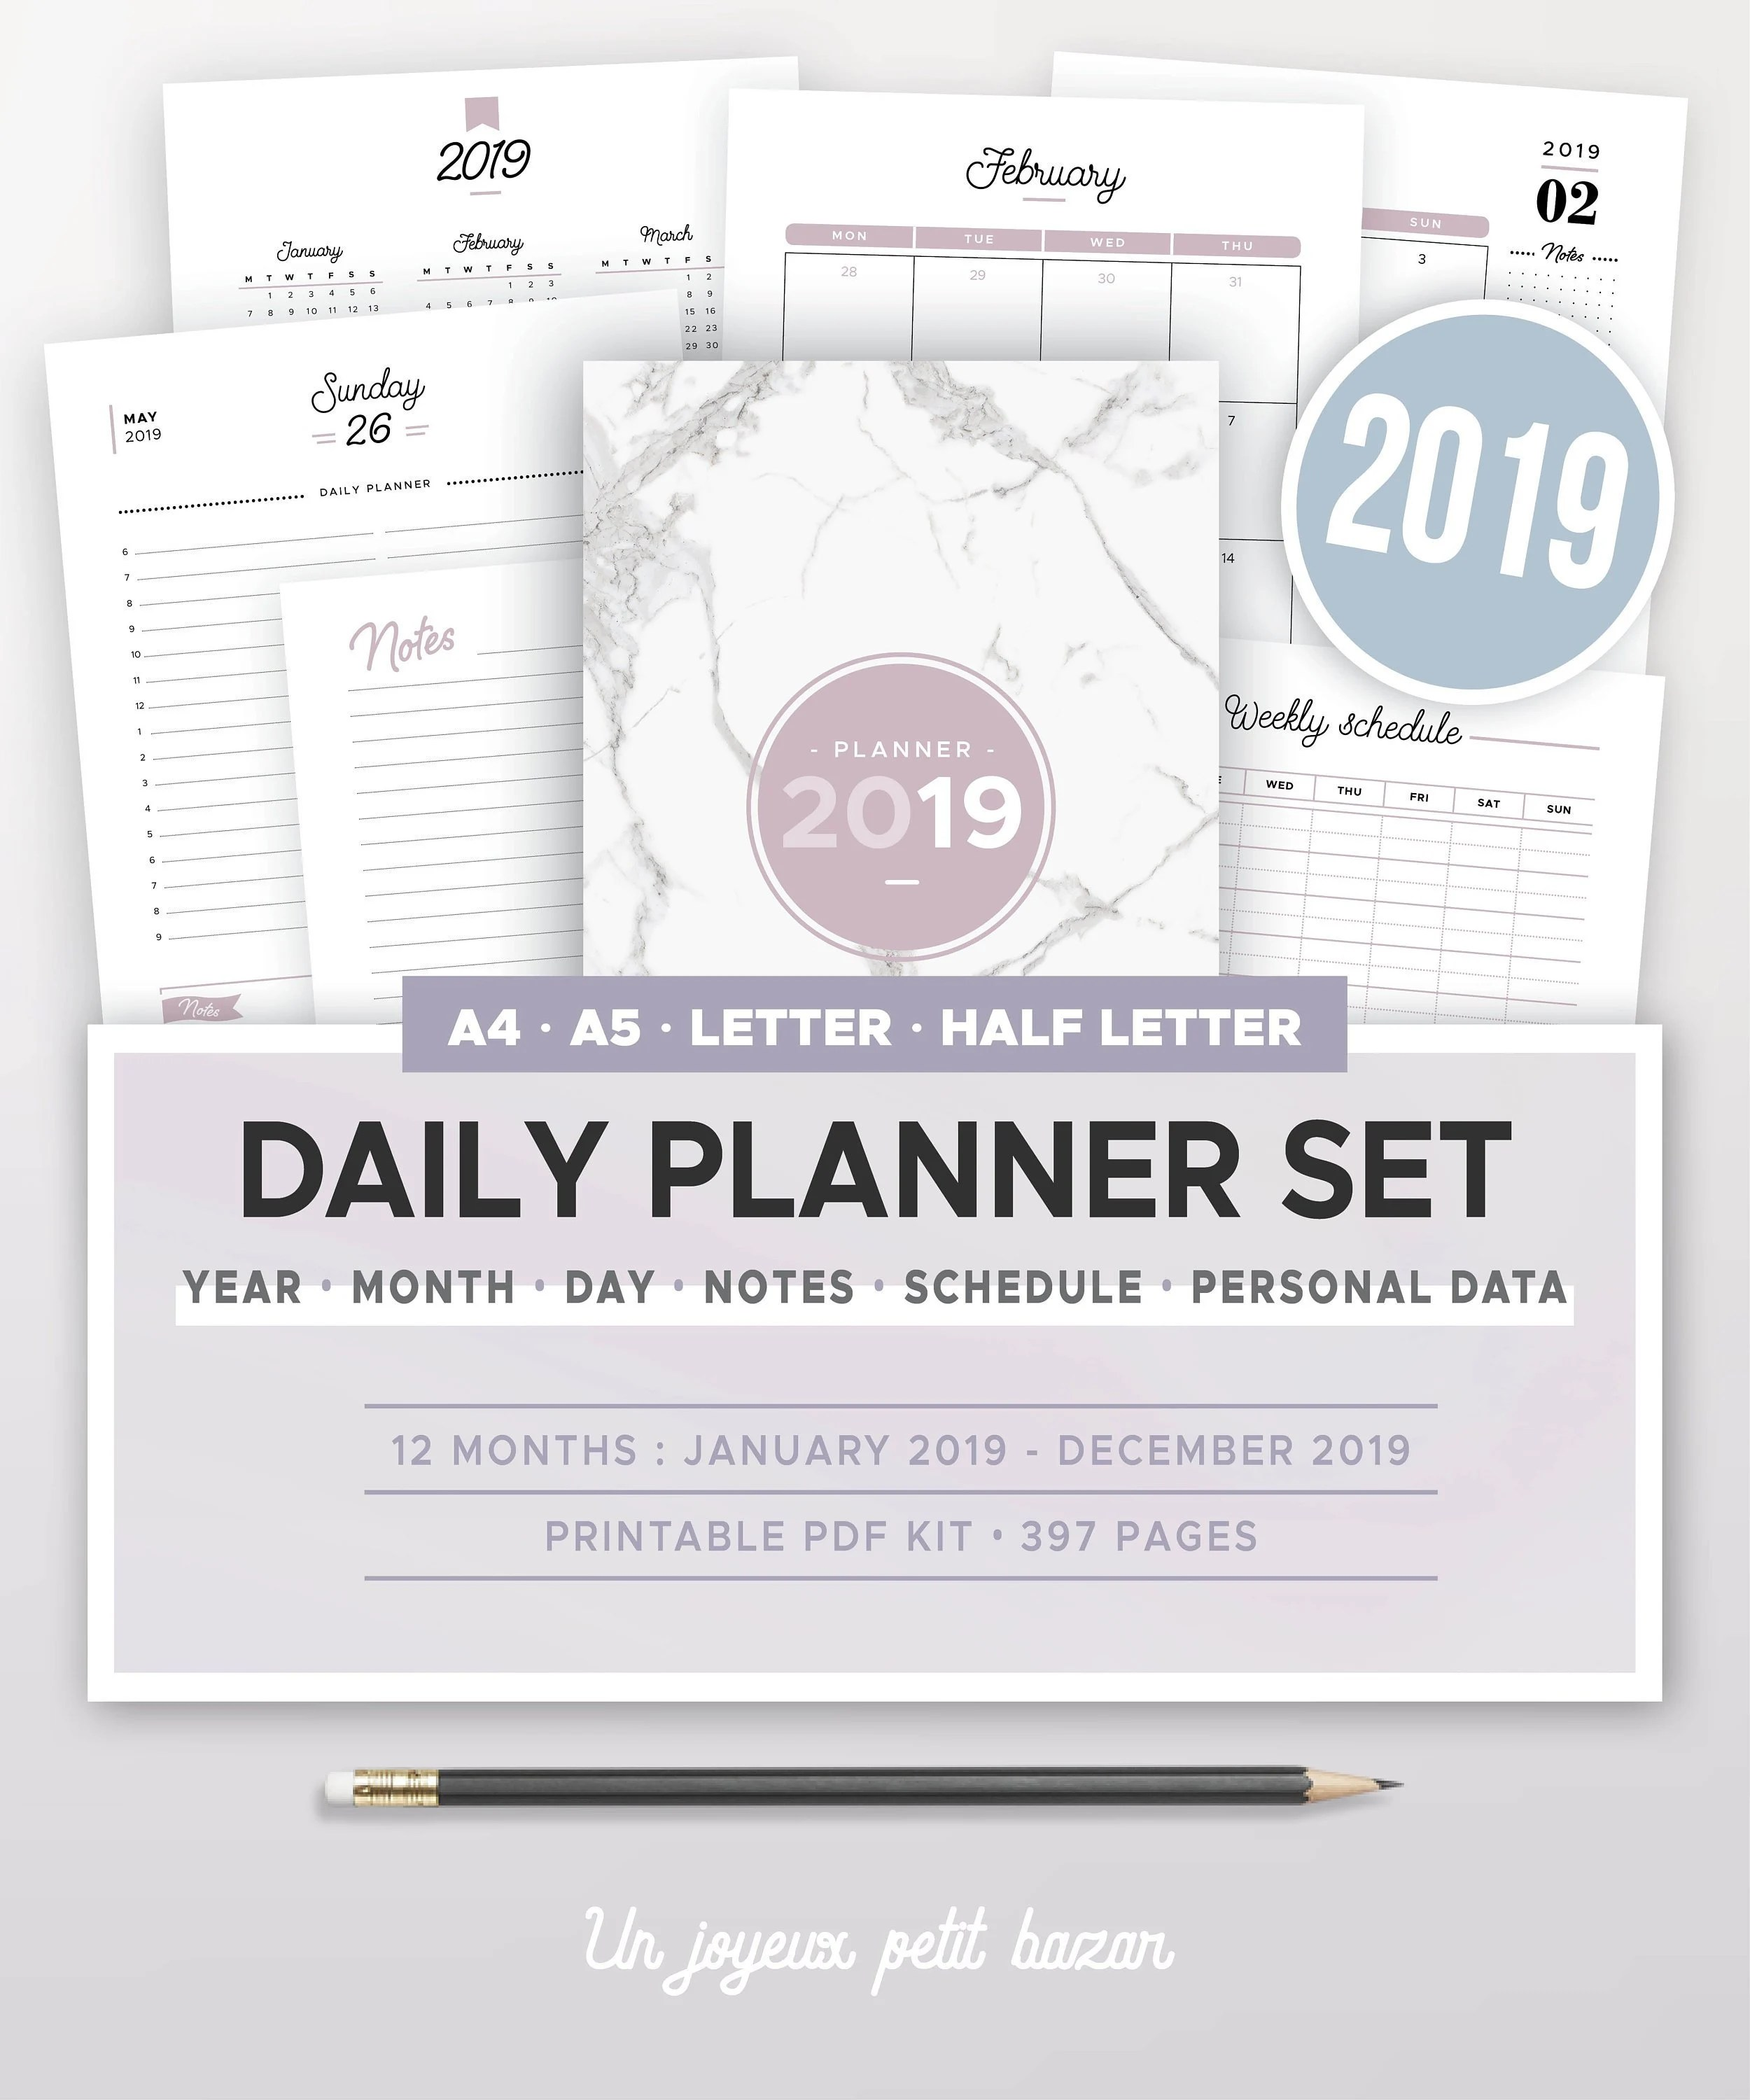 2019 DAILY PLANNER KIT printable yearly  monthly calendar Etsy